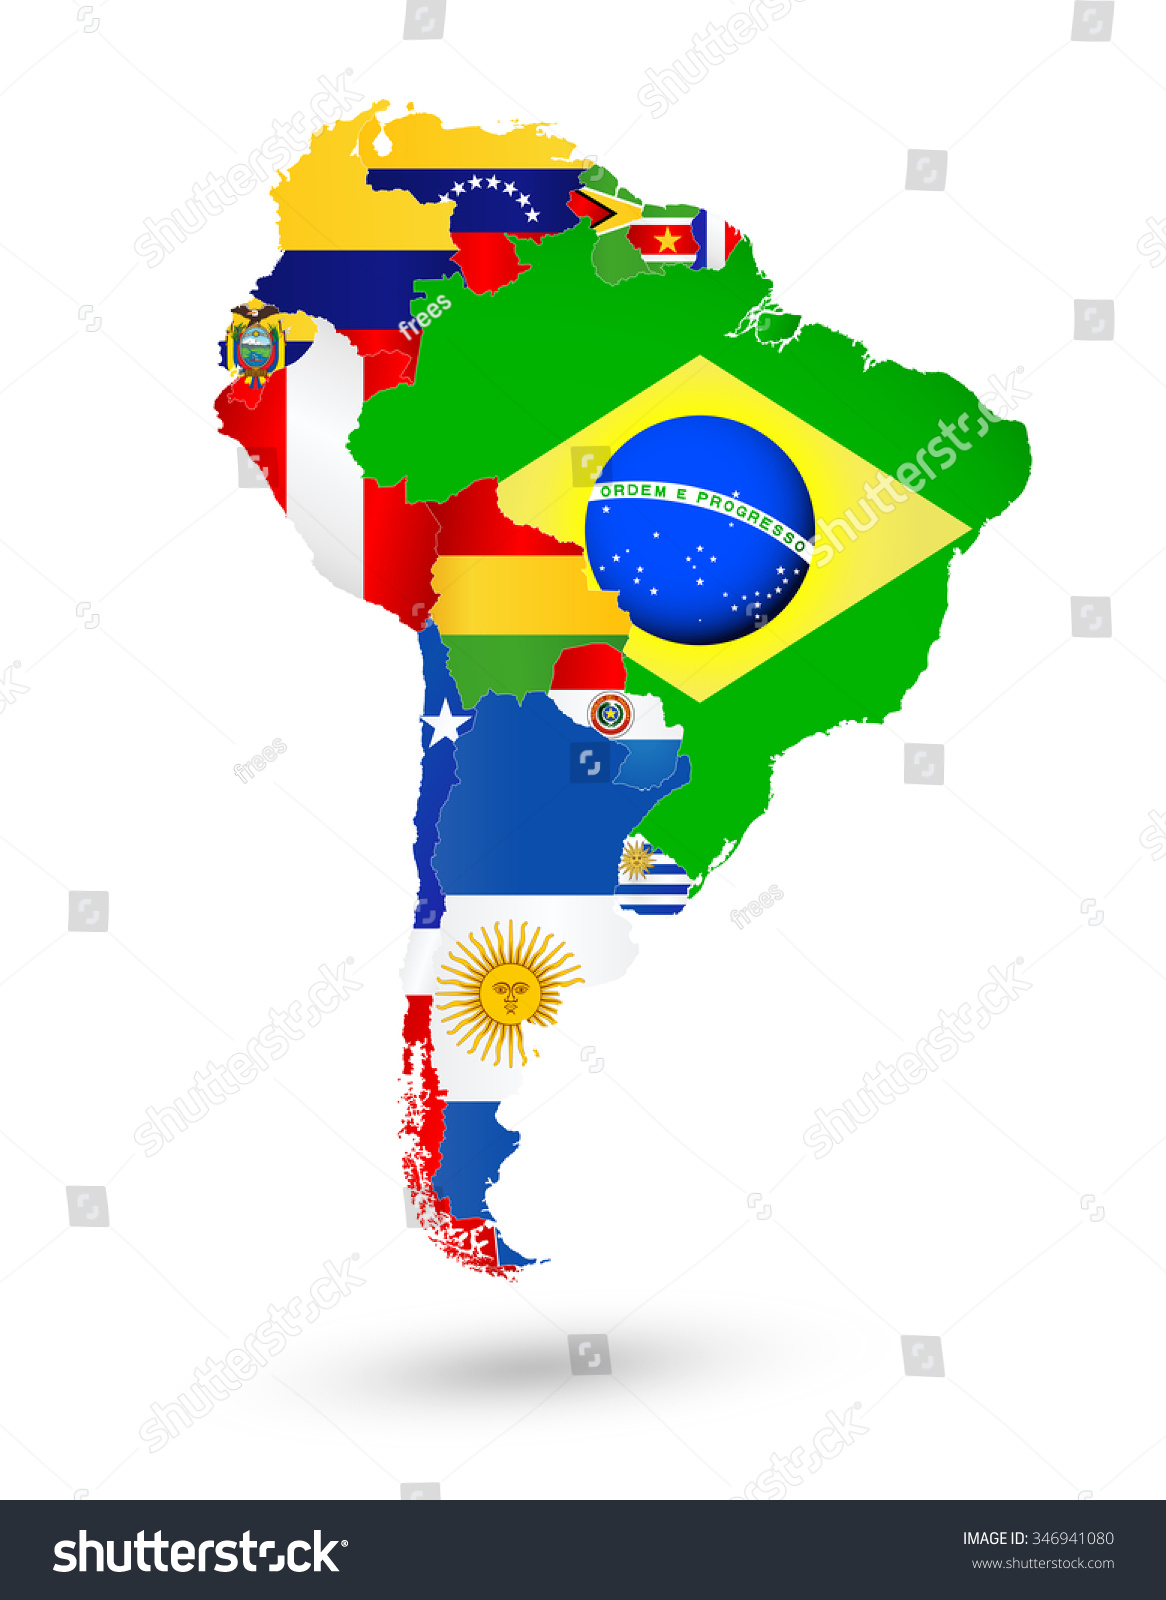 South america map flags location on stock vector 346941080 south america map with flags and location on world map gumiabroncs Image collections